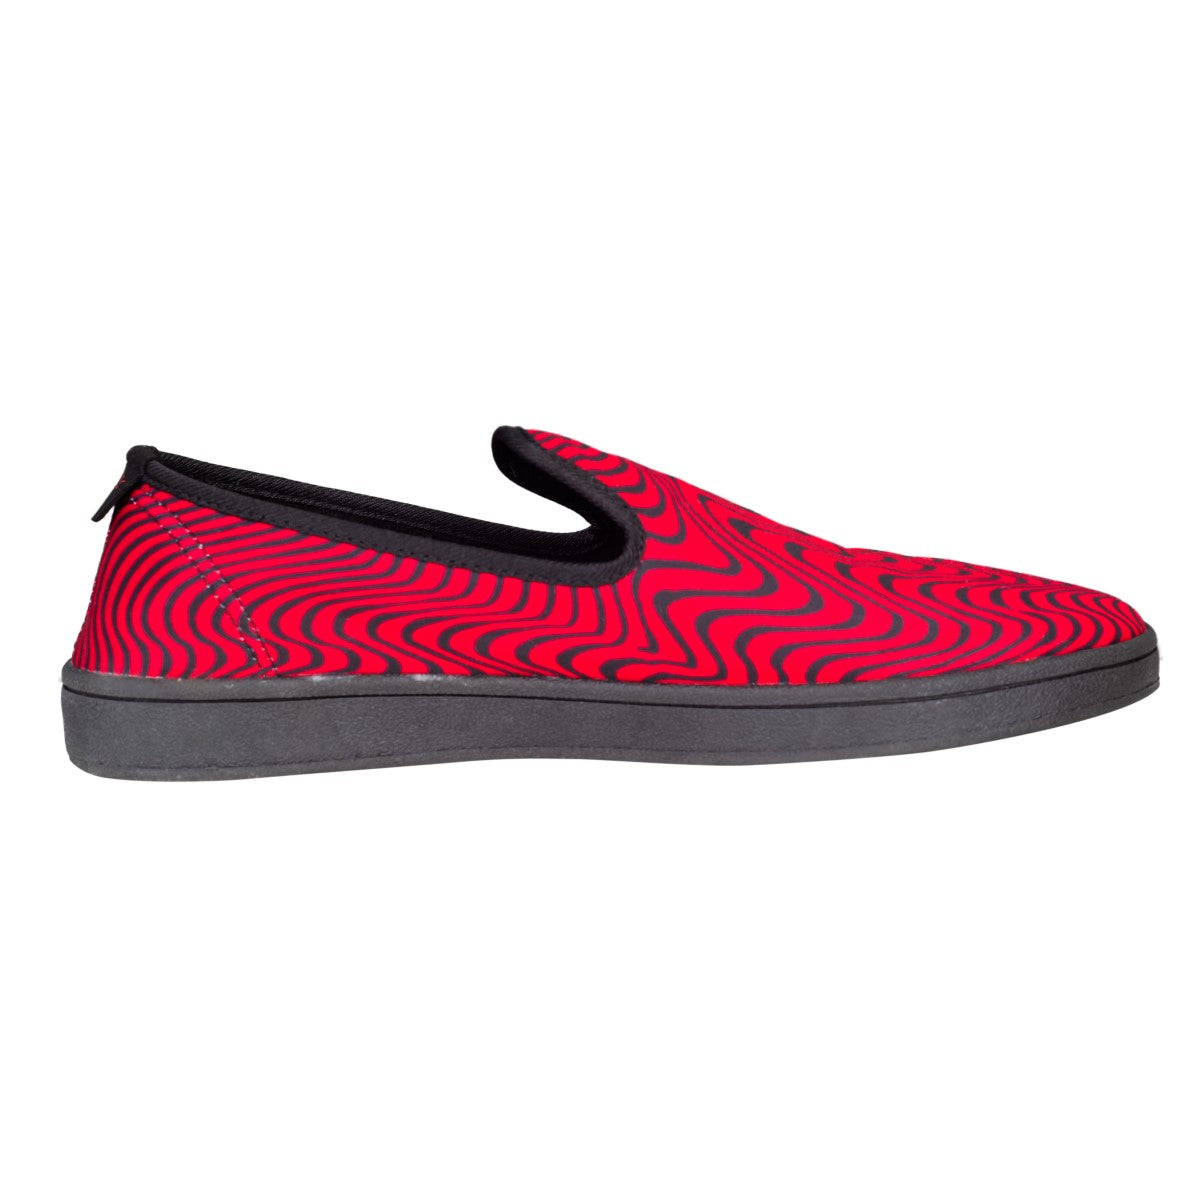 Buena voluntad Mejor grua  PewDiePie Slip On Shoes - Ugly Christmas Sweaters